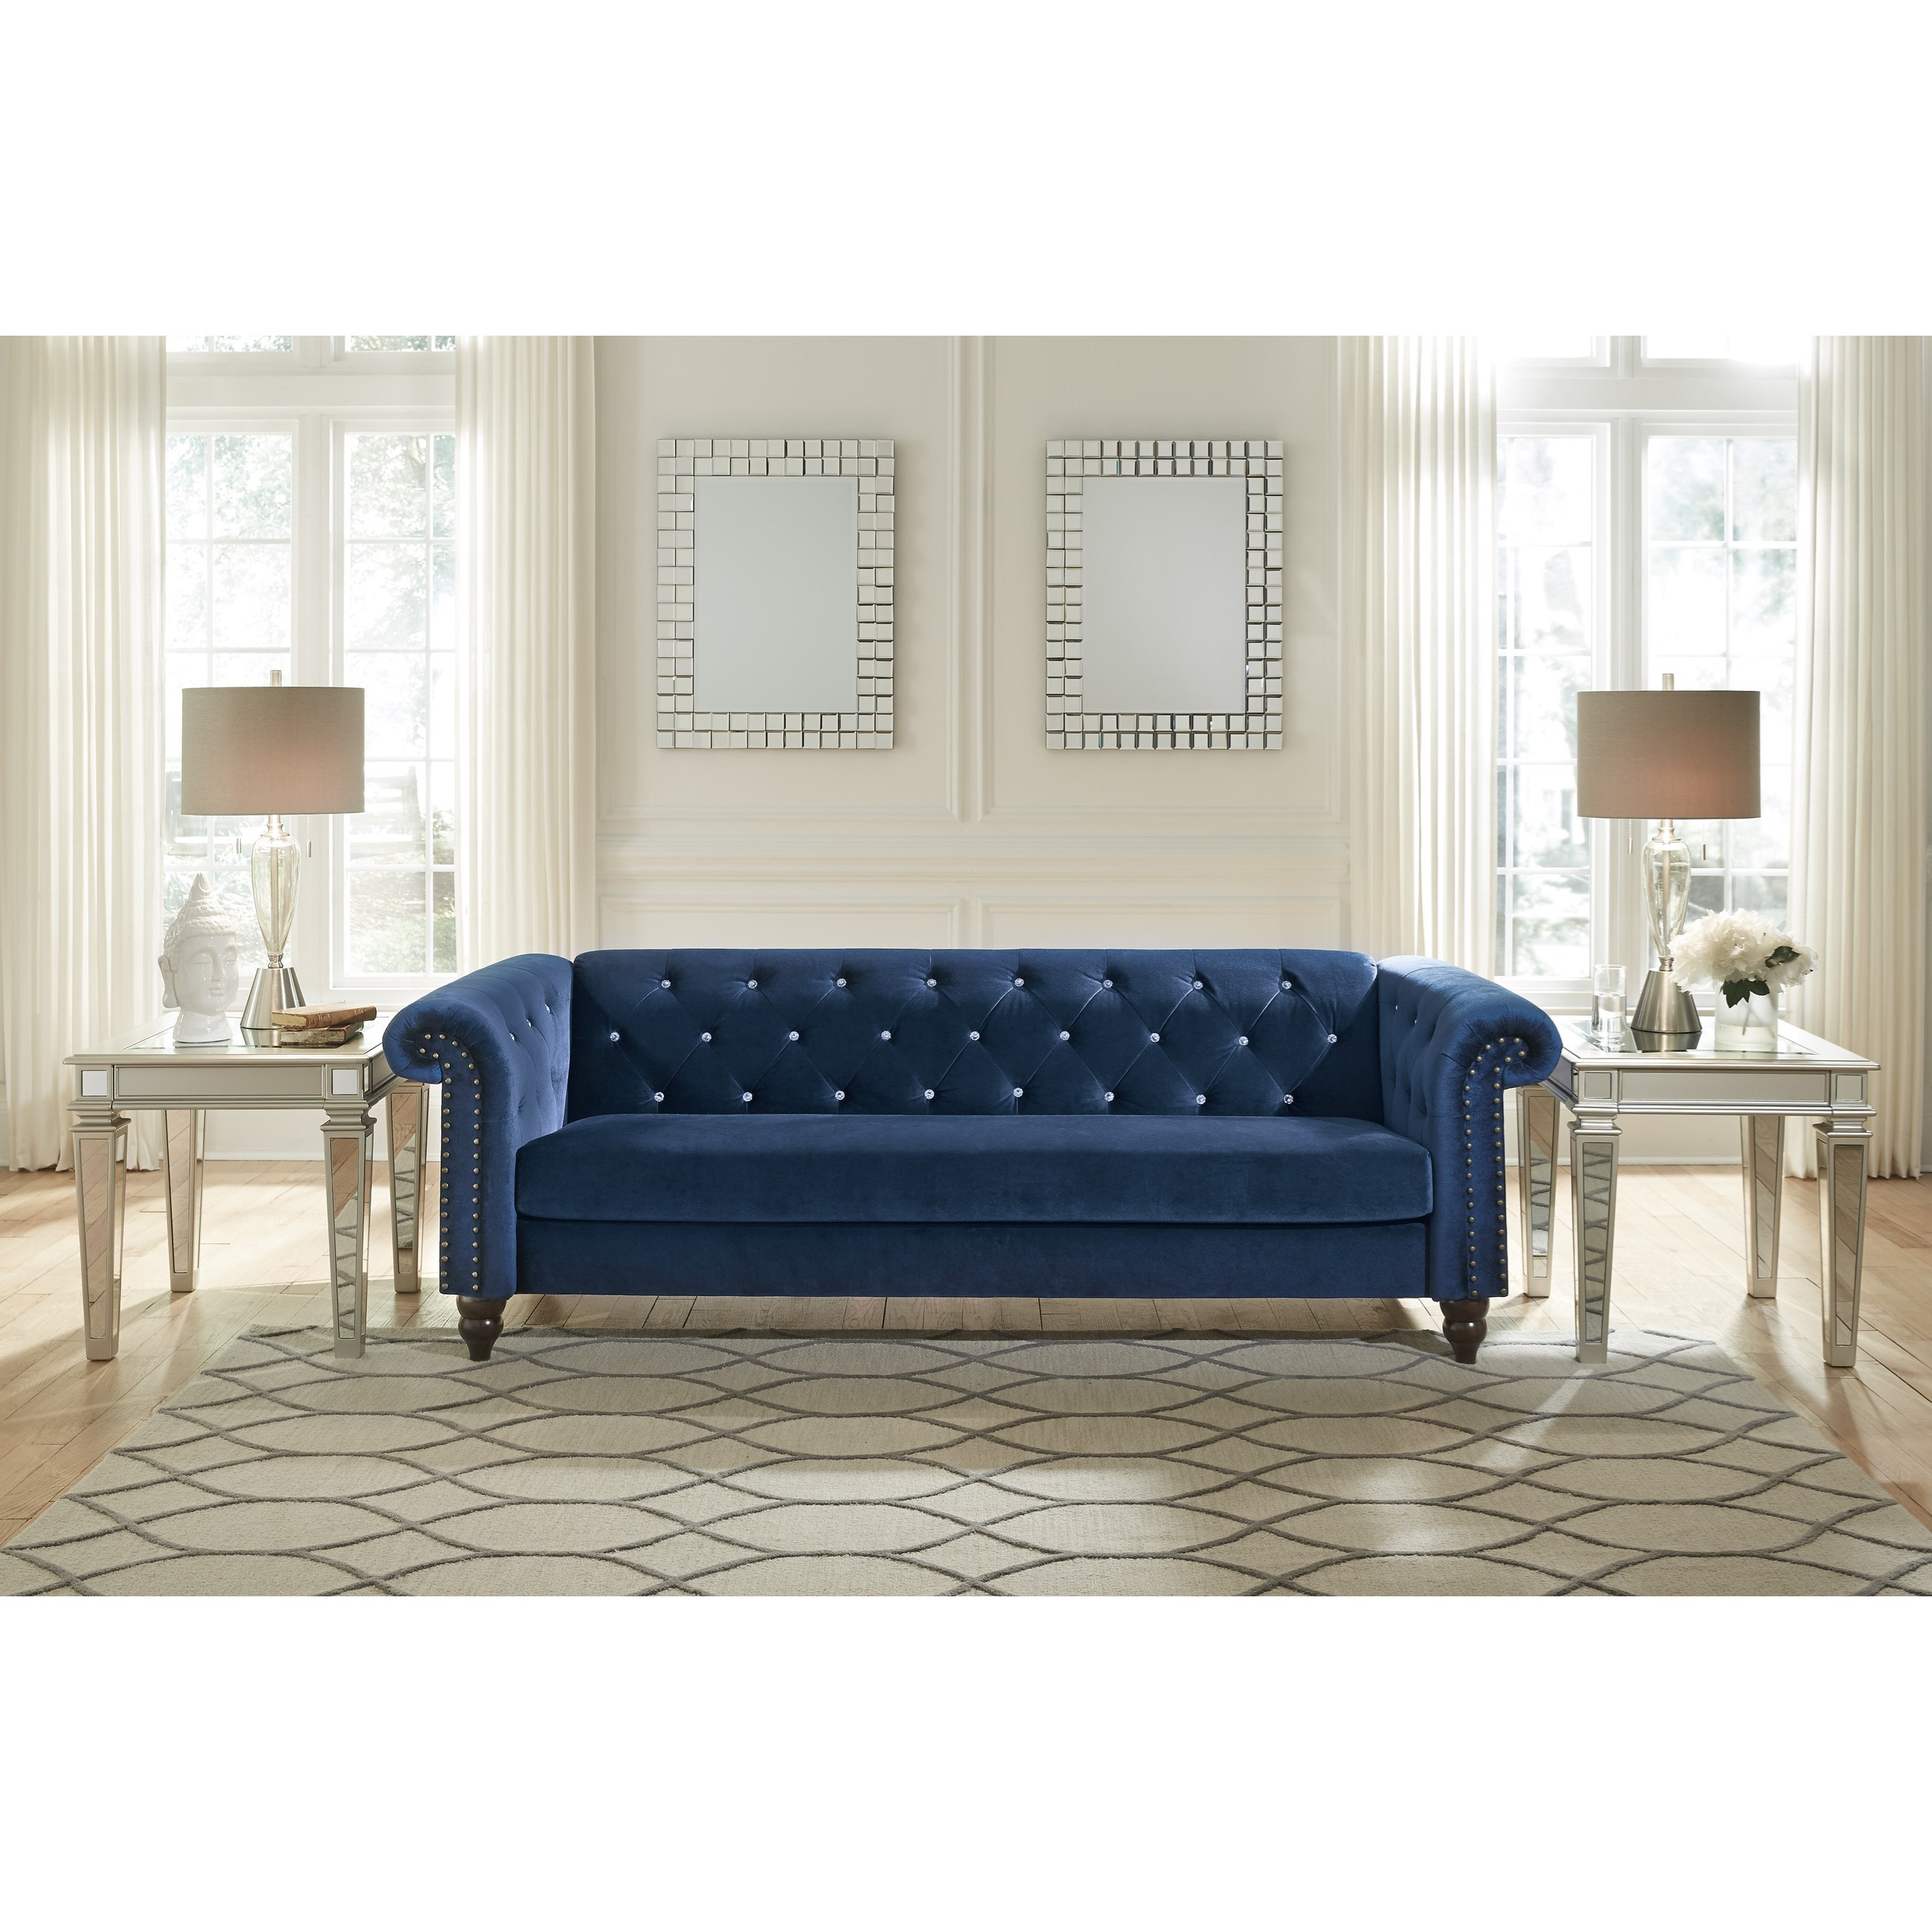 Chesterfield Sofa With Diamond Tufting By Signature Design By Ashley